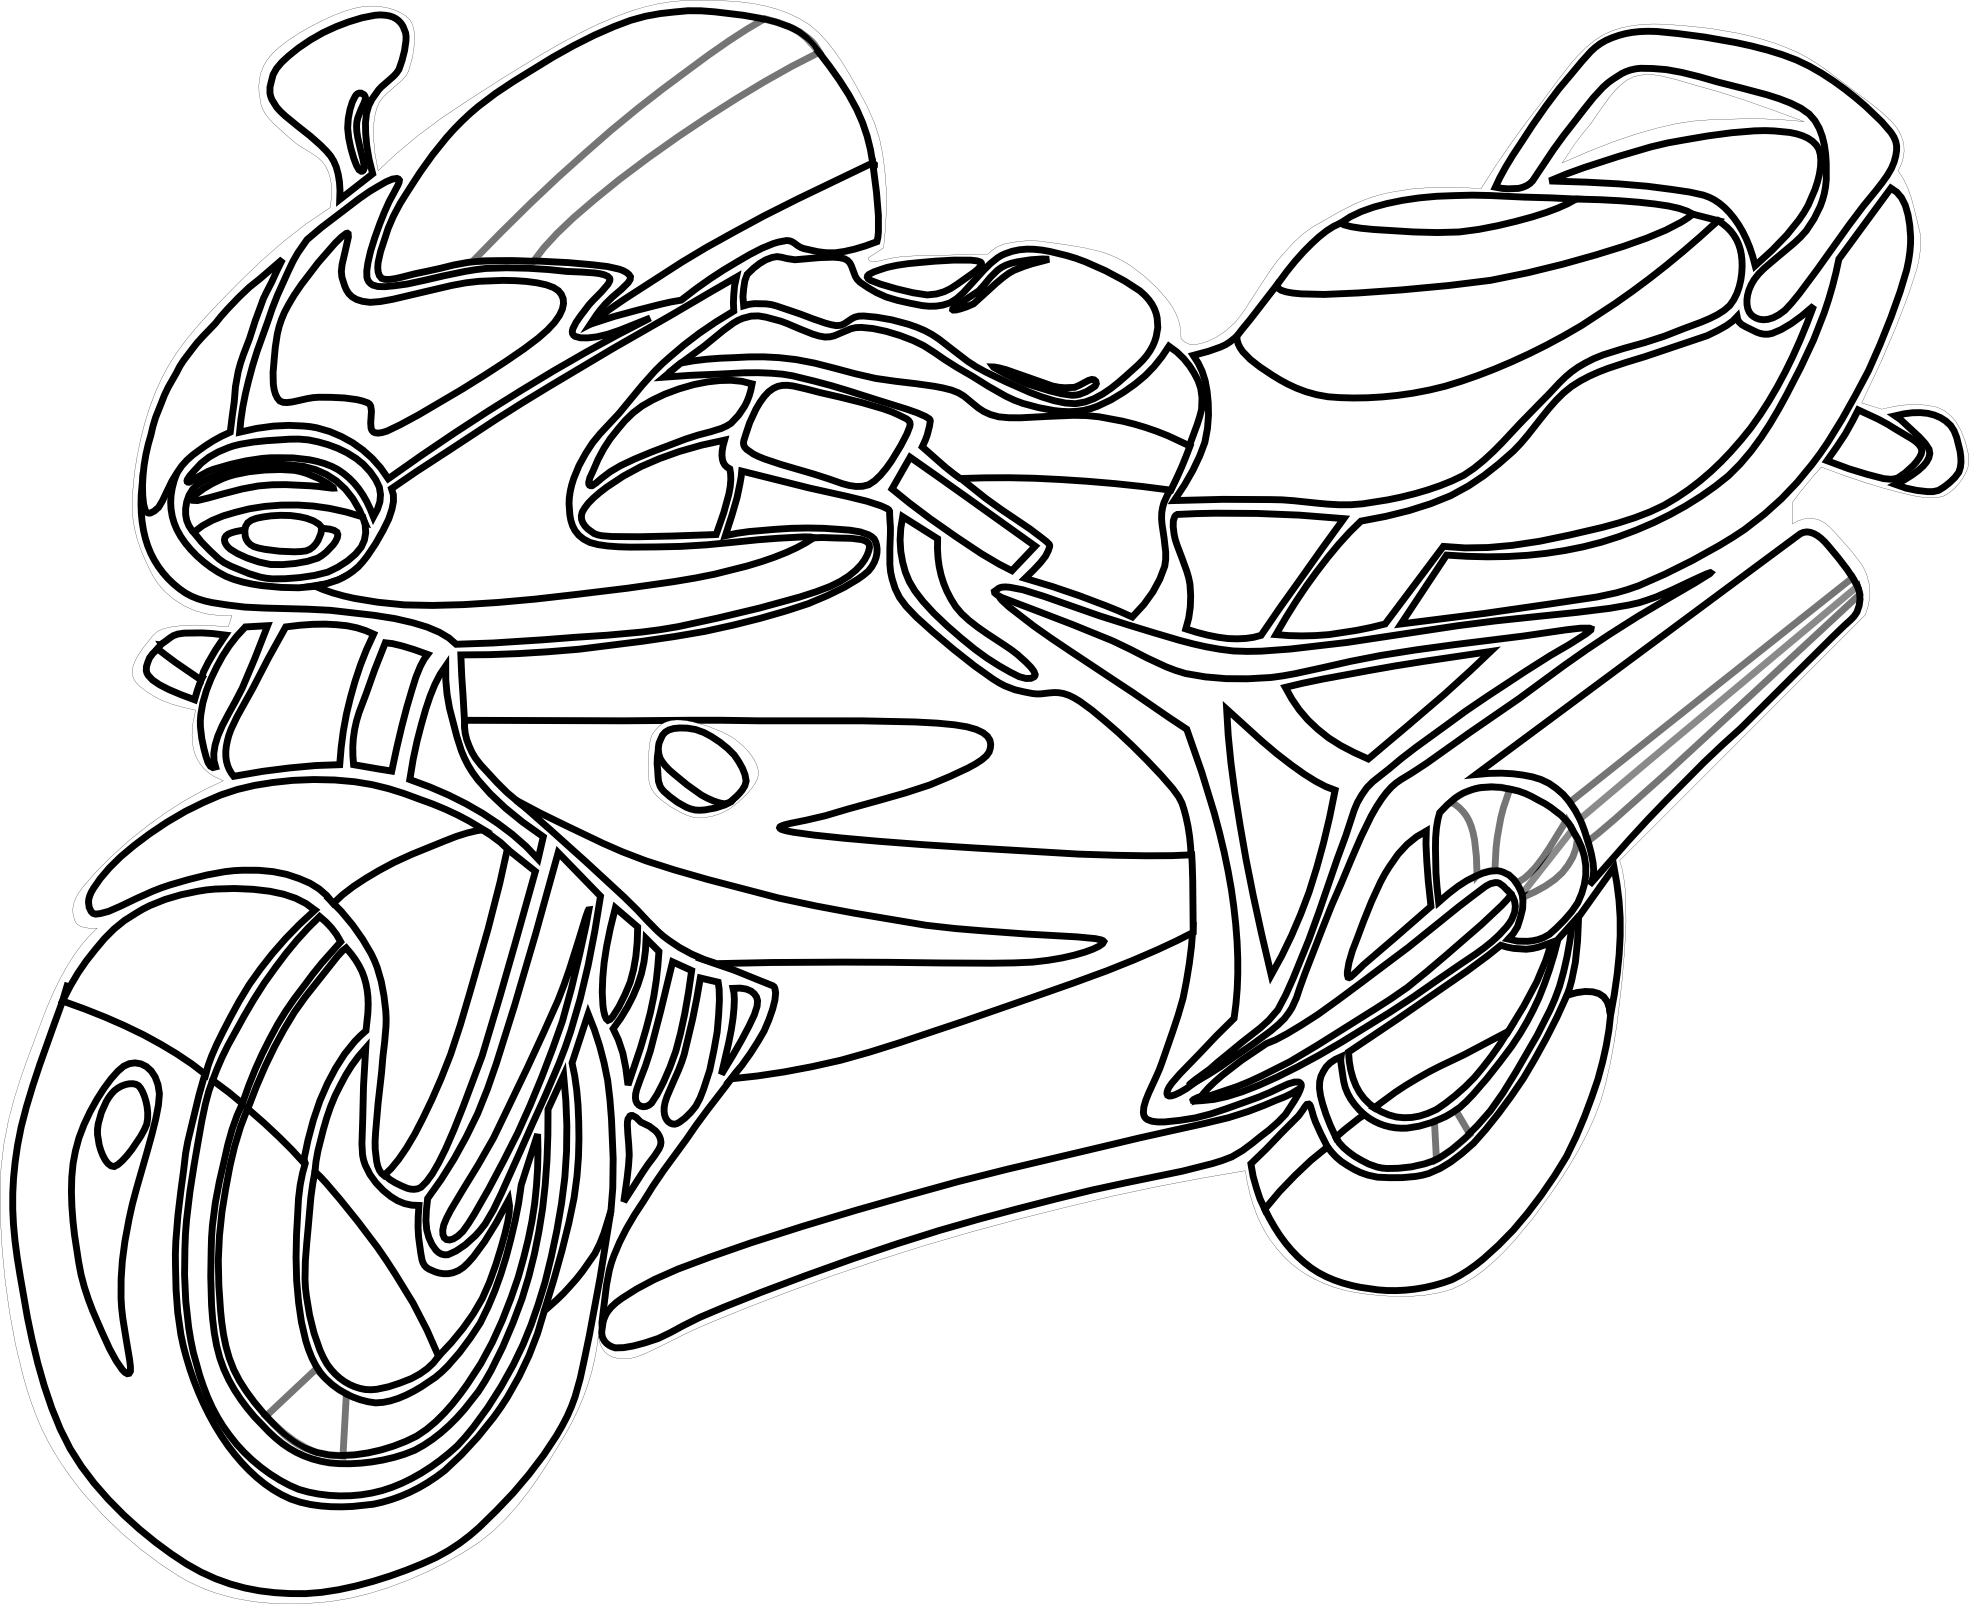 printable motorcycle coloring pages,printable,coloring pages